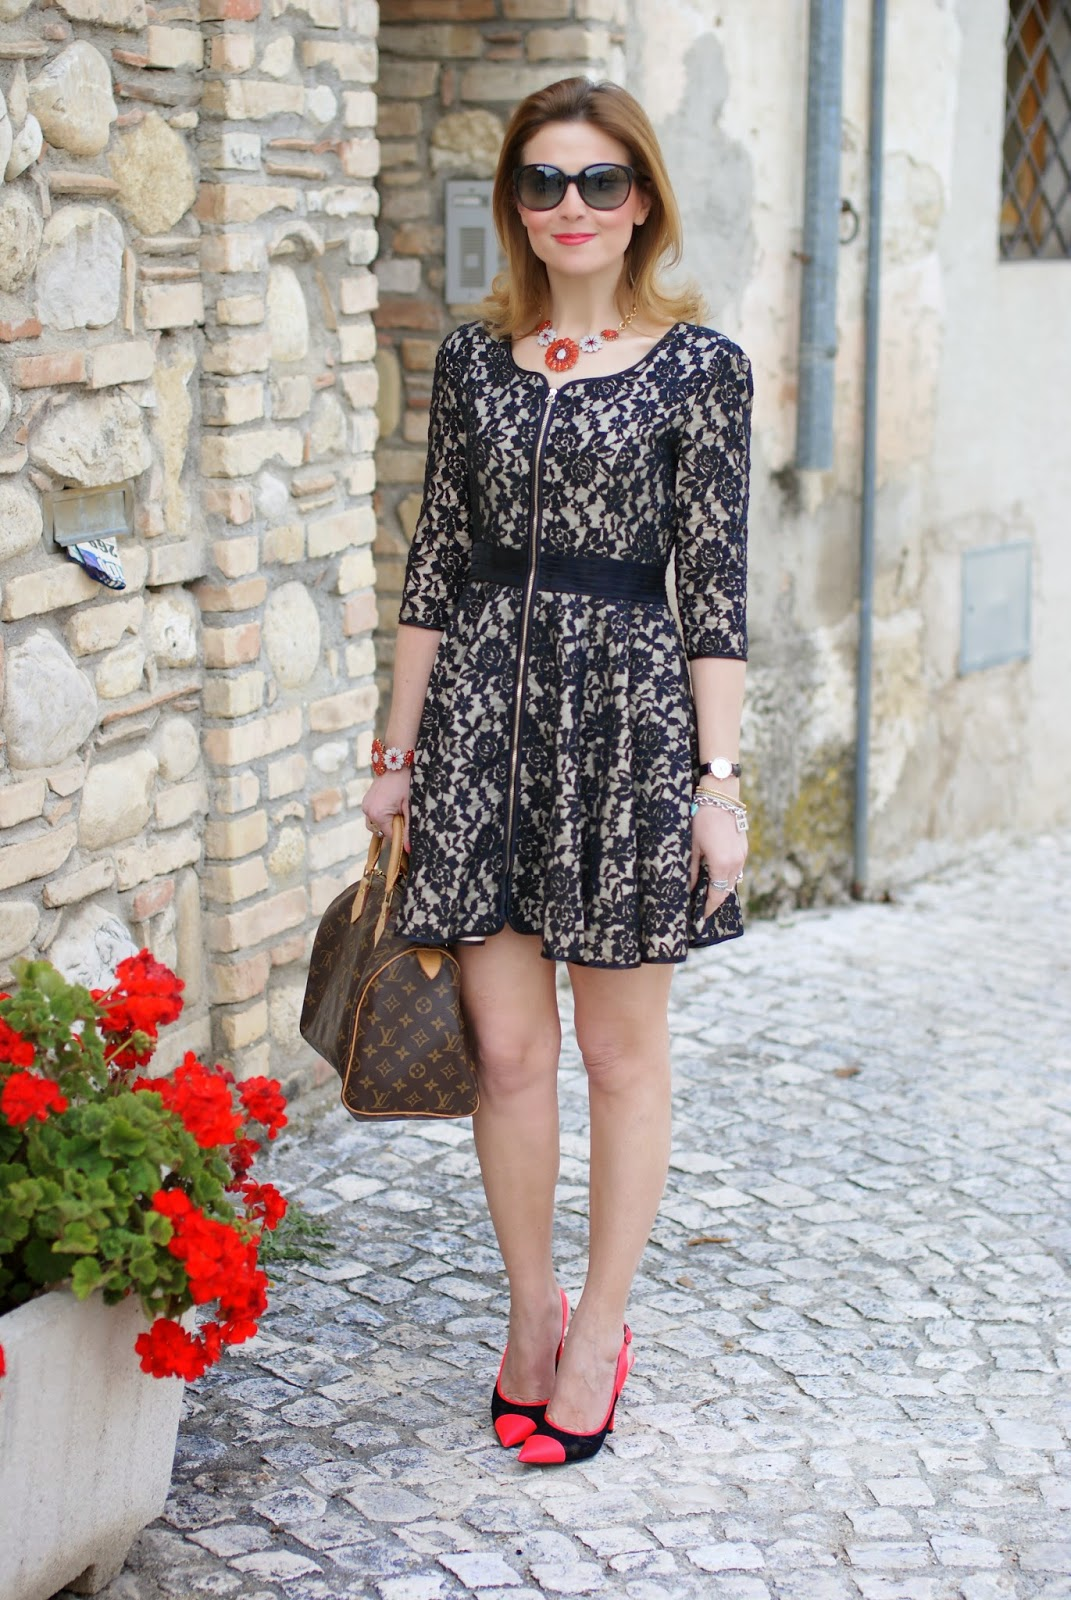 Blackfive black lace dress, Sodini bijoux, cap toe pumps, Louis Vuitton Speedy bag, Daniel Wellington watch, Fashion and Cookies, fashion blogger